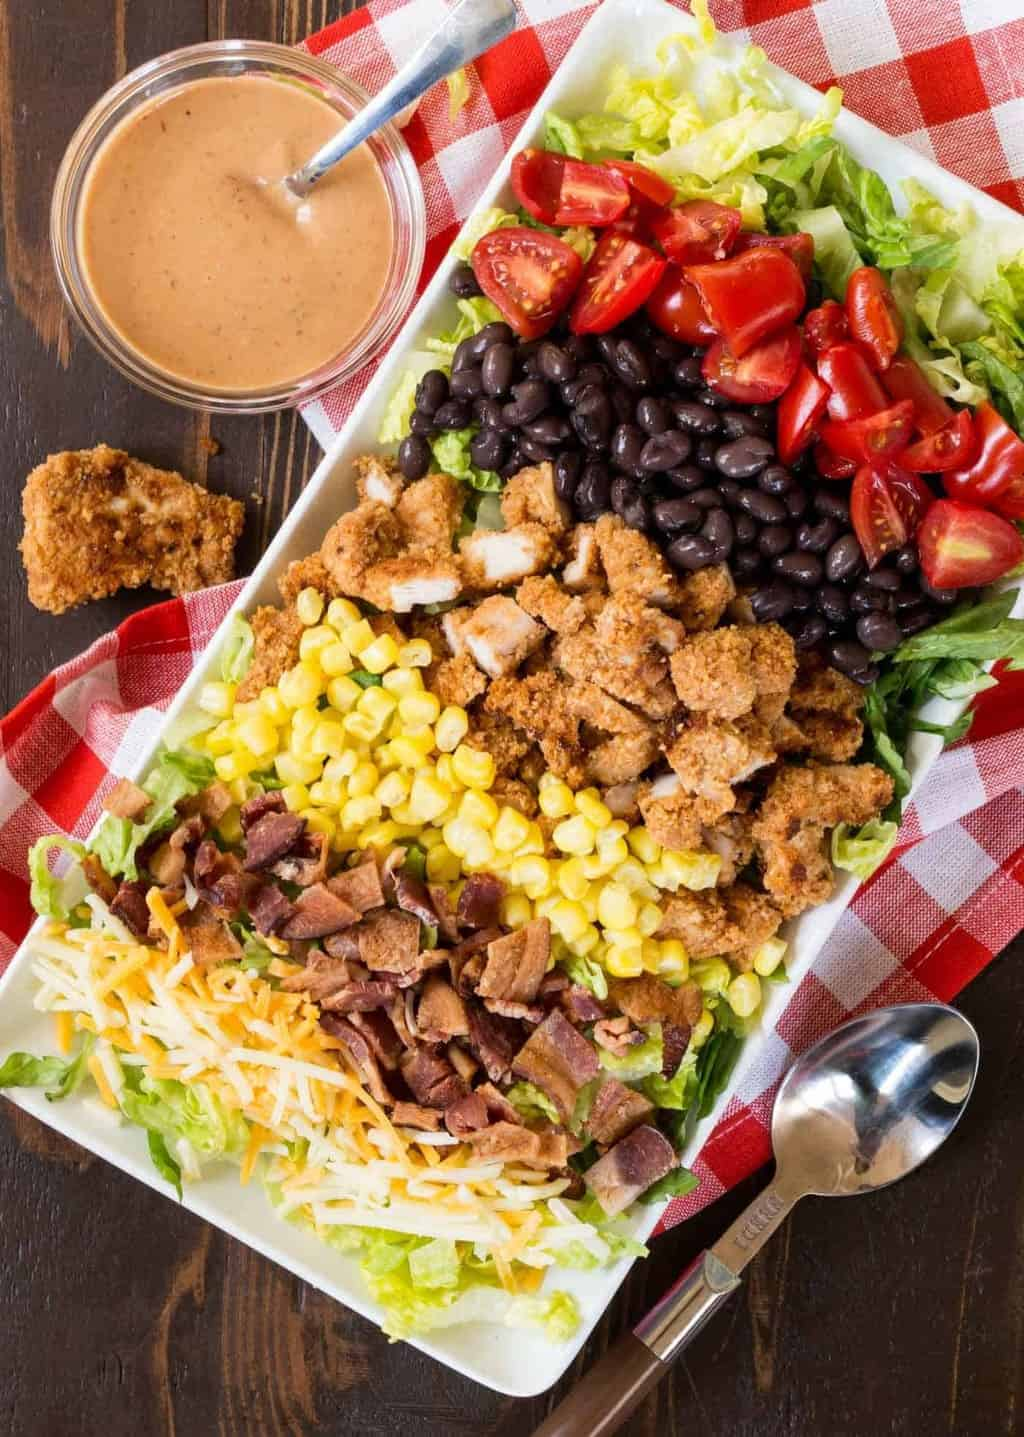 One of the biggest challenges when entertaining is making sure you are not stuck in the kitchen while your guests enjoy the party. Add this make-ahead Crunchy Honey BBQ Chicken Salad to your summer party menus and enjoy more time with your guests and less time prepping food.